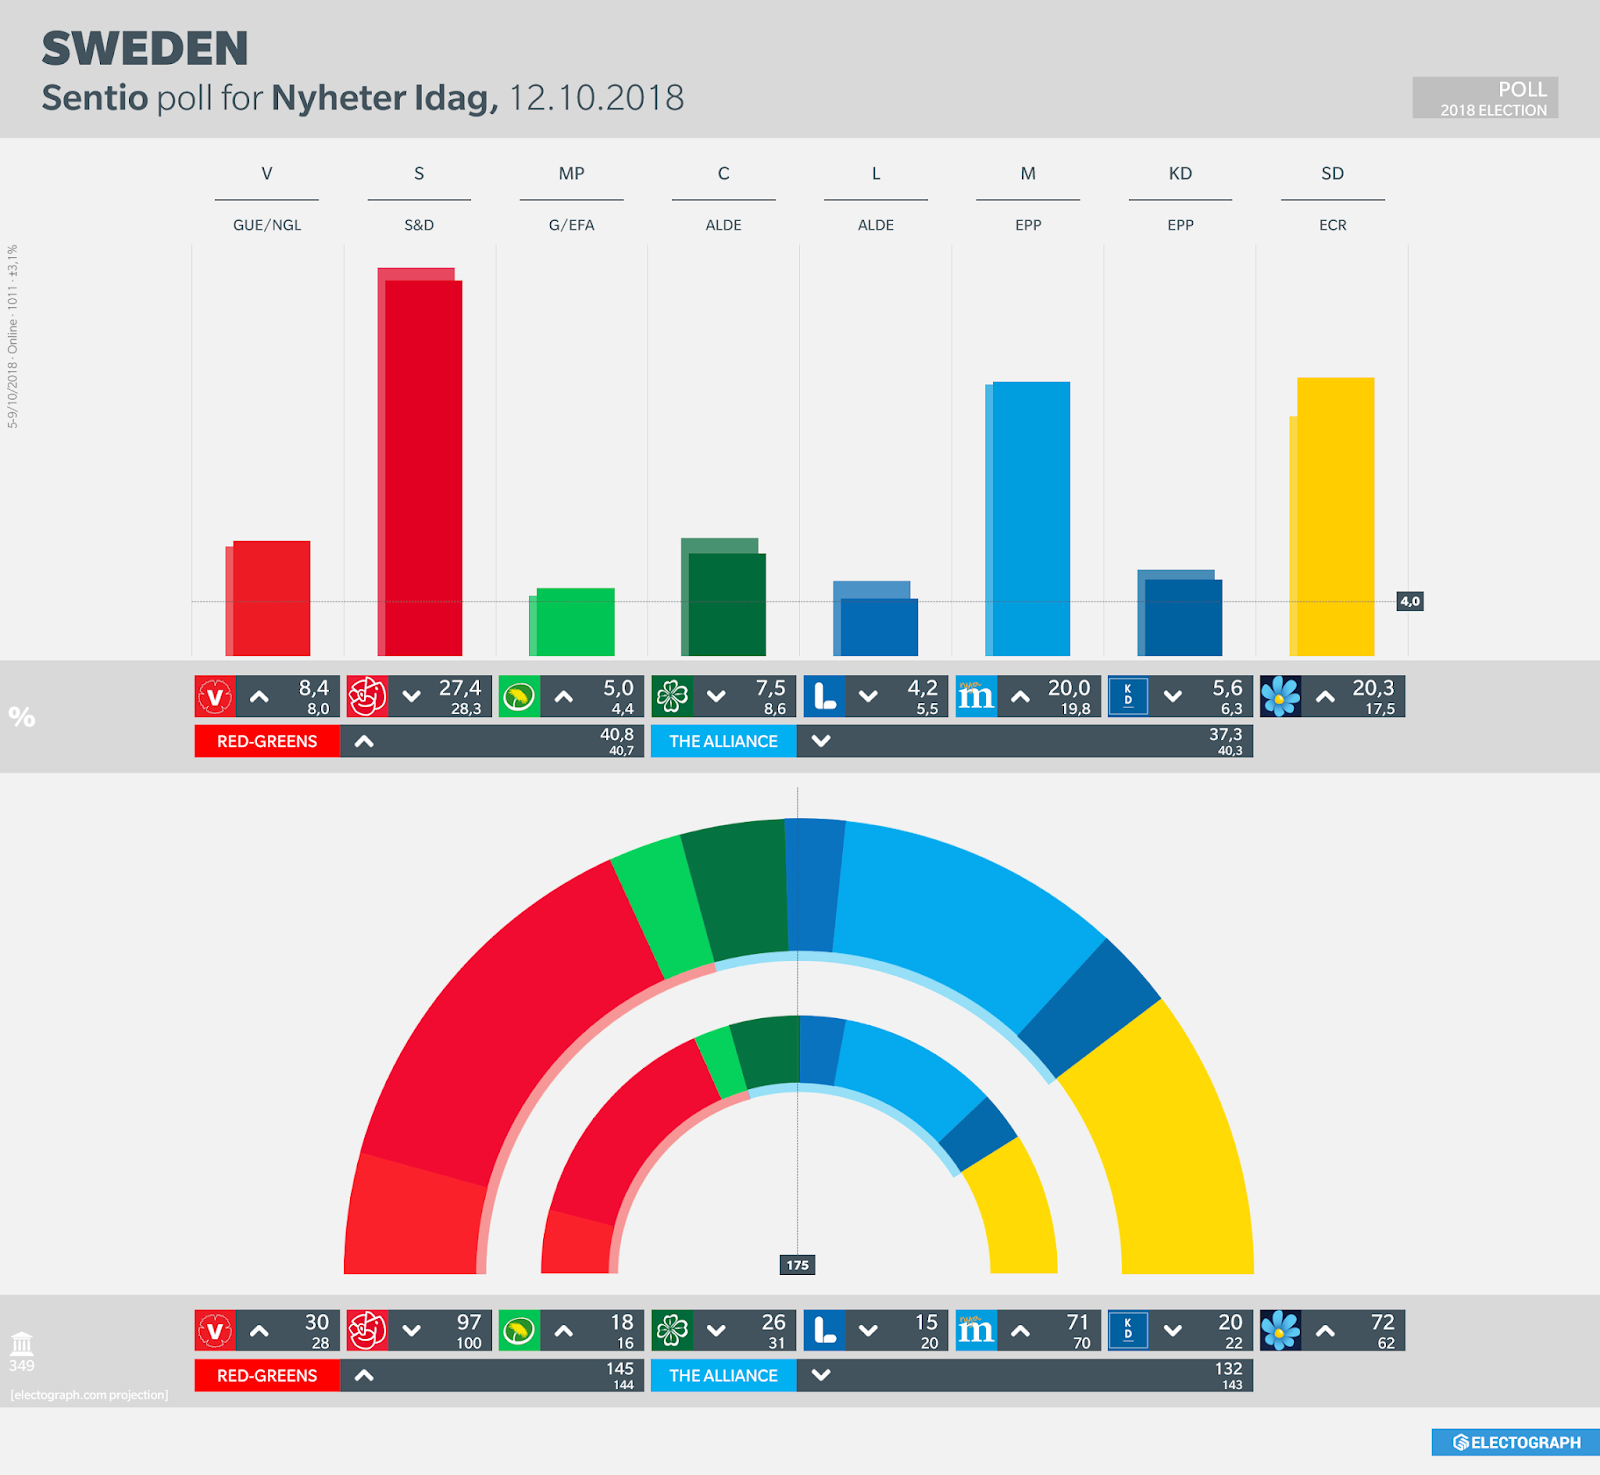 SWEDEN: Sentio poll chart for Nyheter Idag, October 2018